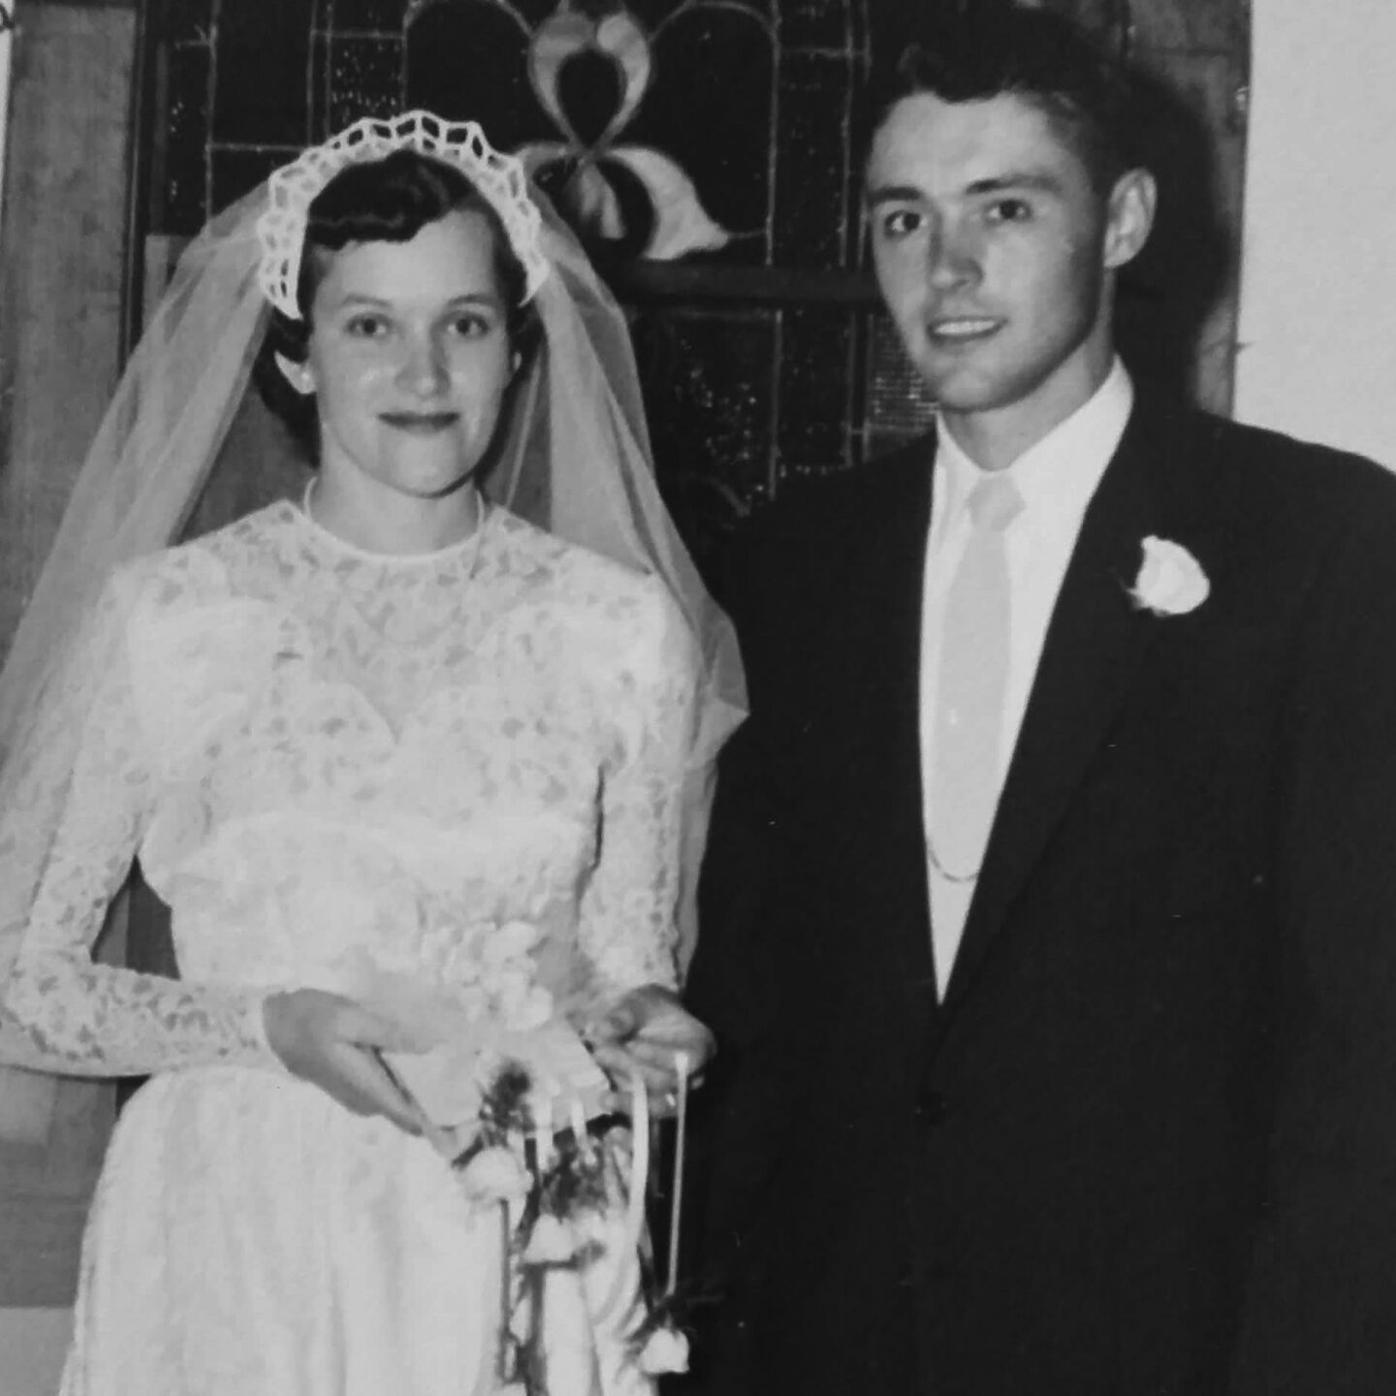 Married 65 years: Richard and Marilyn Loos